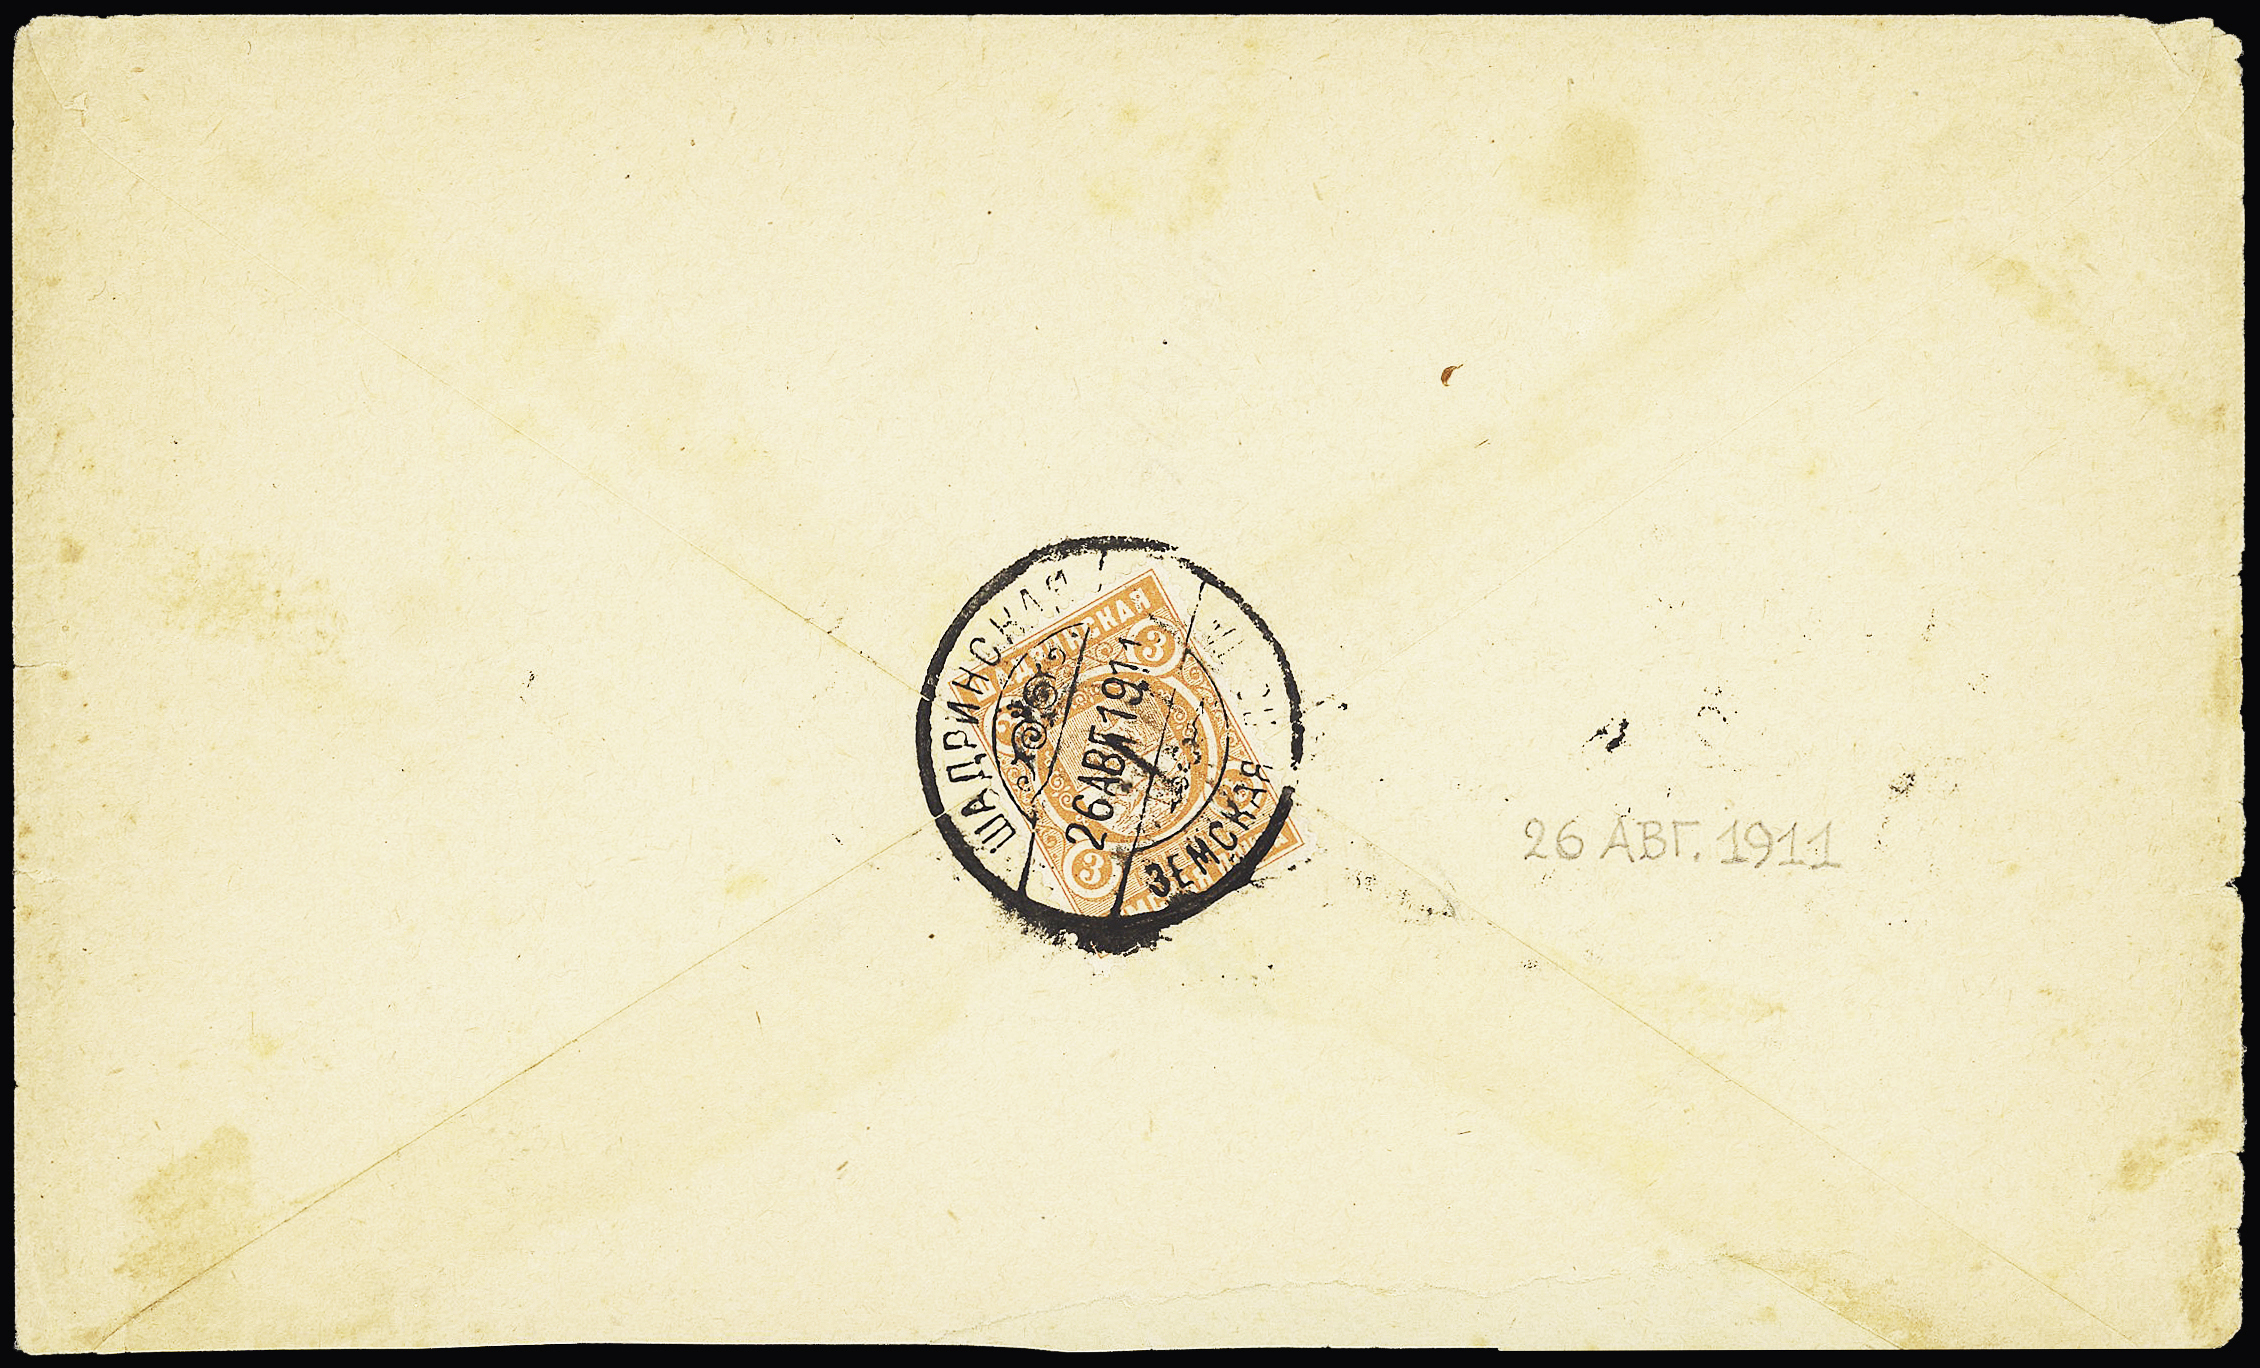 Lot 549 - Eastern Europe » RUSSIA - ZEMSTVOS » Shadrinsk (Perm Government)  -  Le Timbre Classique SA SALE ON OFFERS N ° 37 PARIS